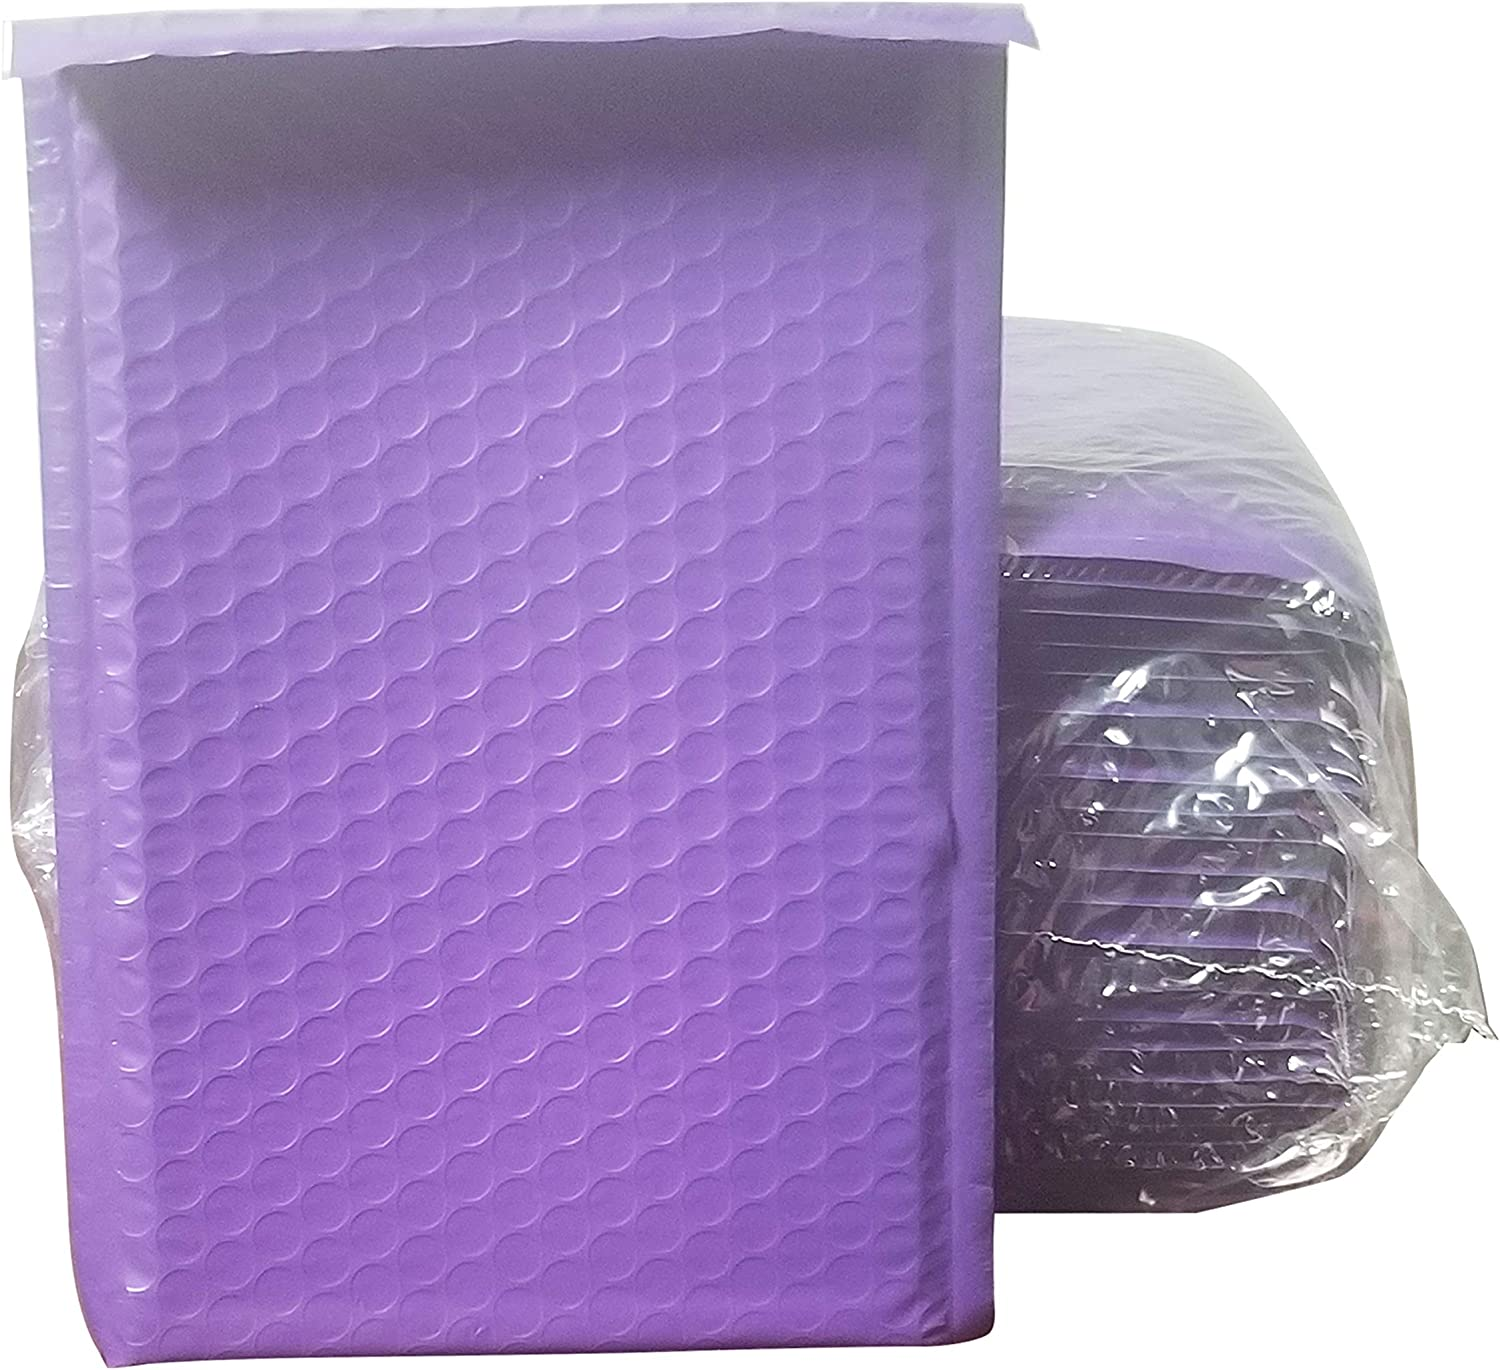 BMP 6x10 Inches Poly Bubble Mailers Self Seal Purple #0 Padded Envelopes Waterproof Envelopes Pack of 50